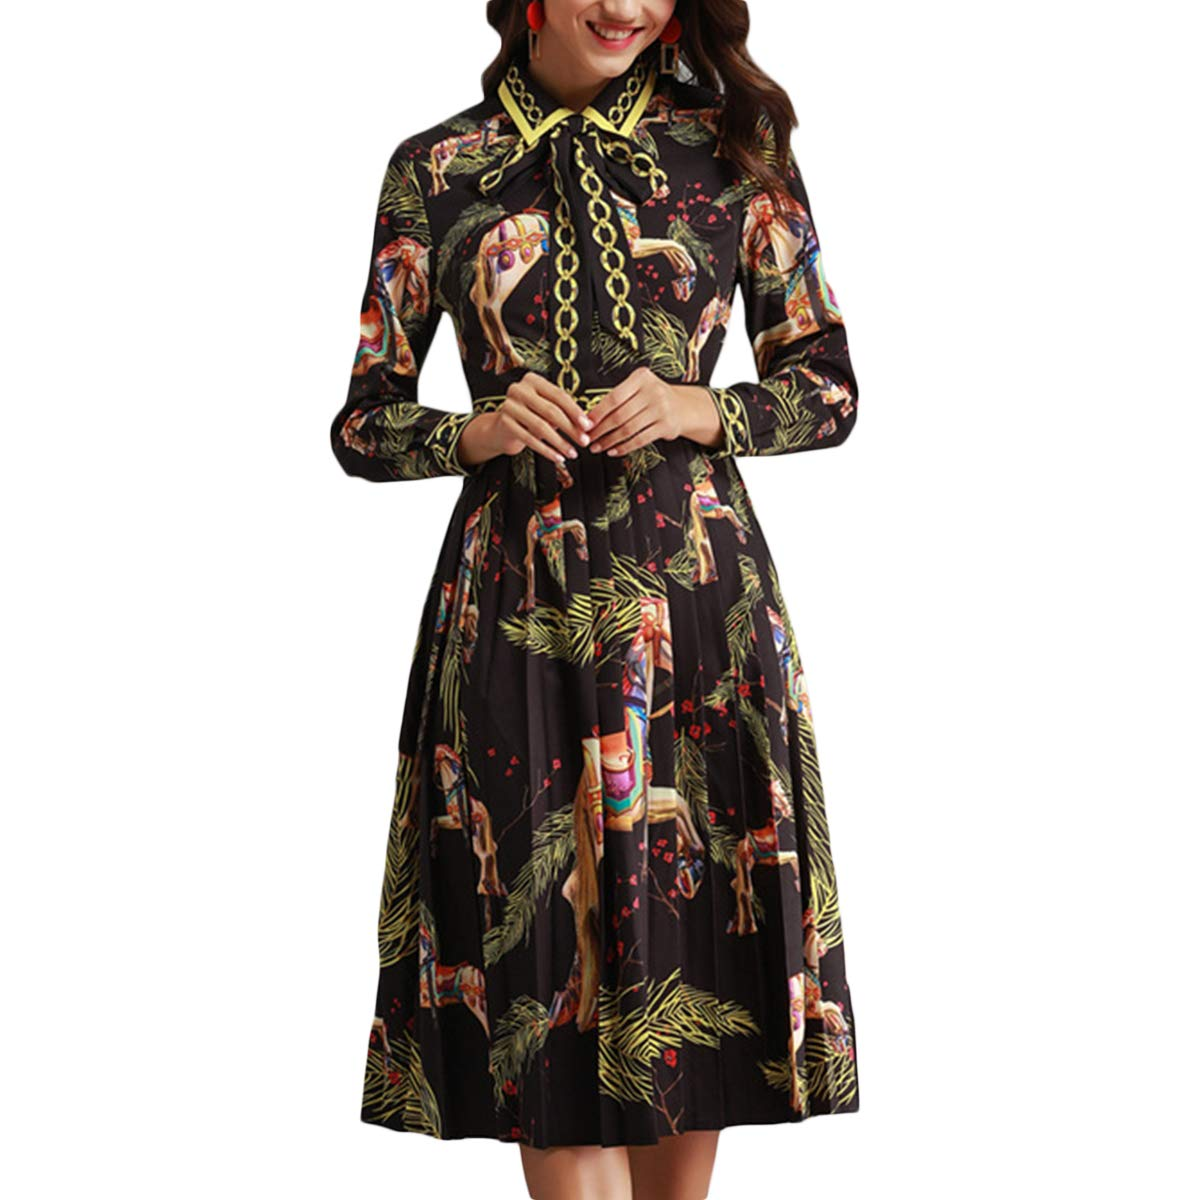 Black Floral Print Aline Bow Tie Lapel Long Sleeve Women High Waist Pleated Dress